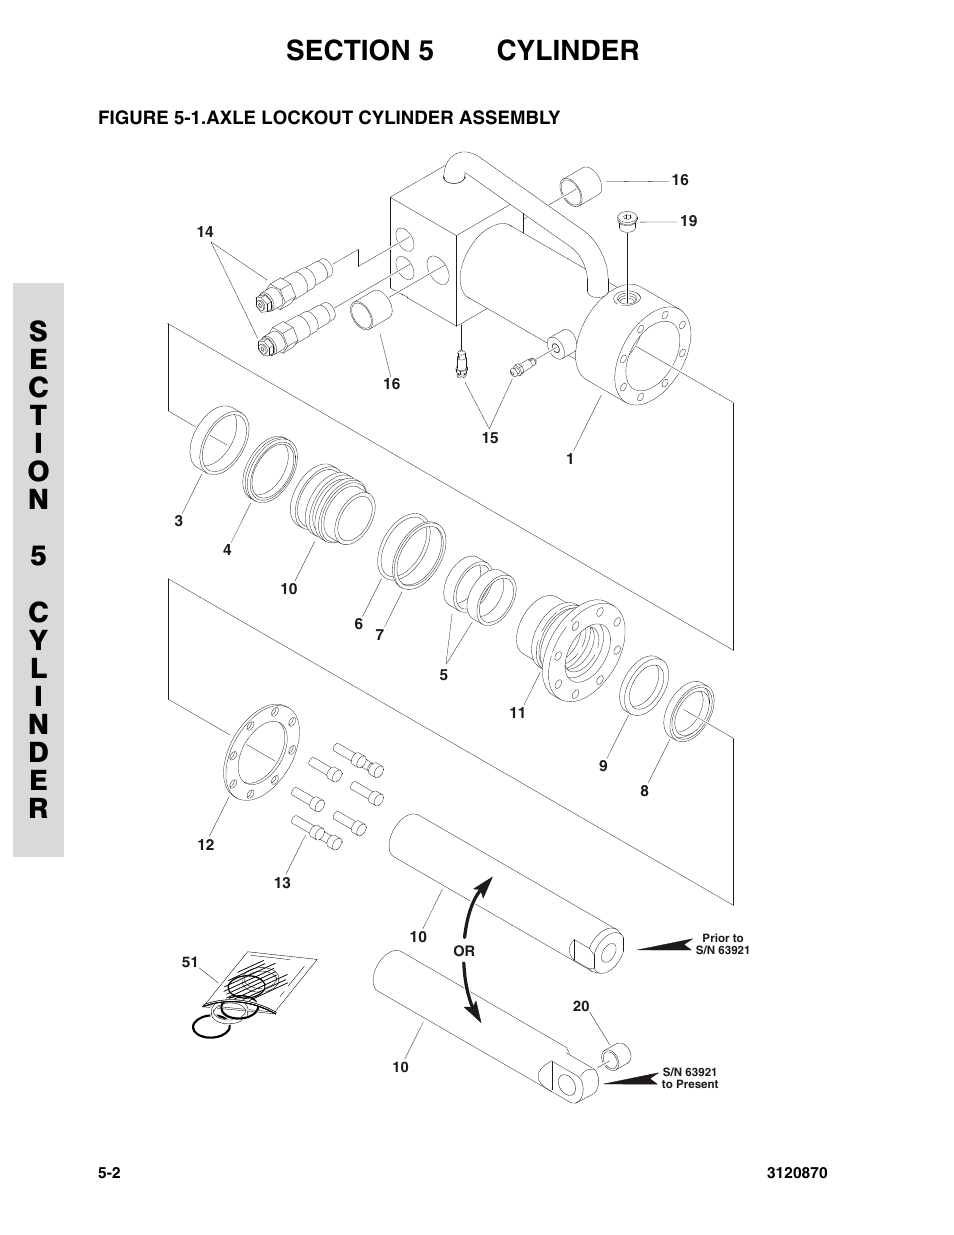 Figure 5-1. axle lockout cylinder assembly, Axle lockout